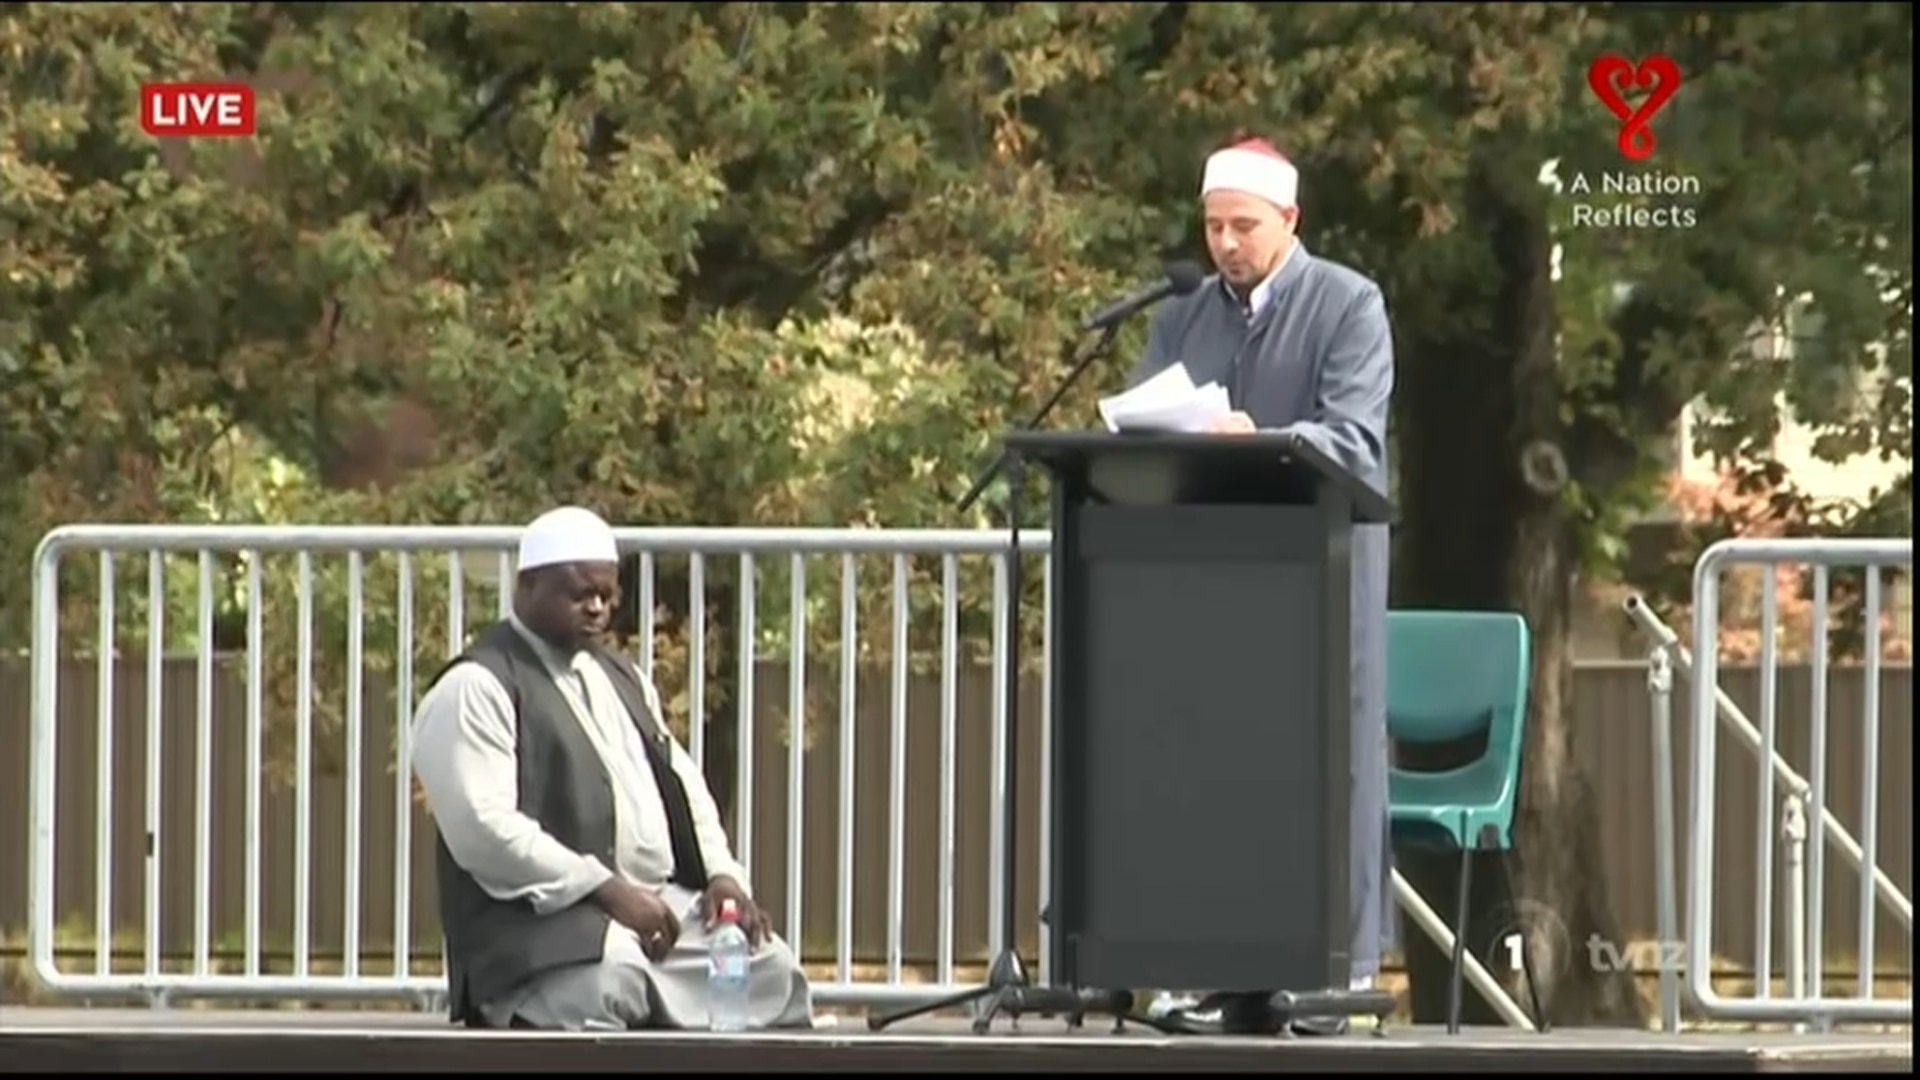 Gamal Fouda, the imam of Al Noor mosque, delivering his sermon.